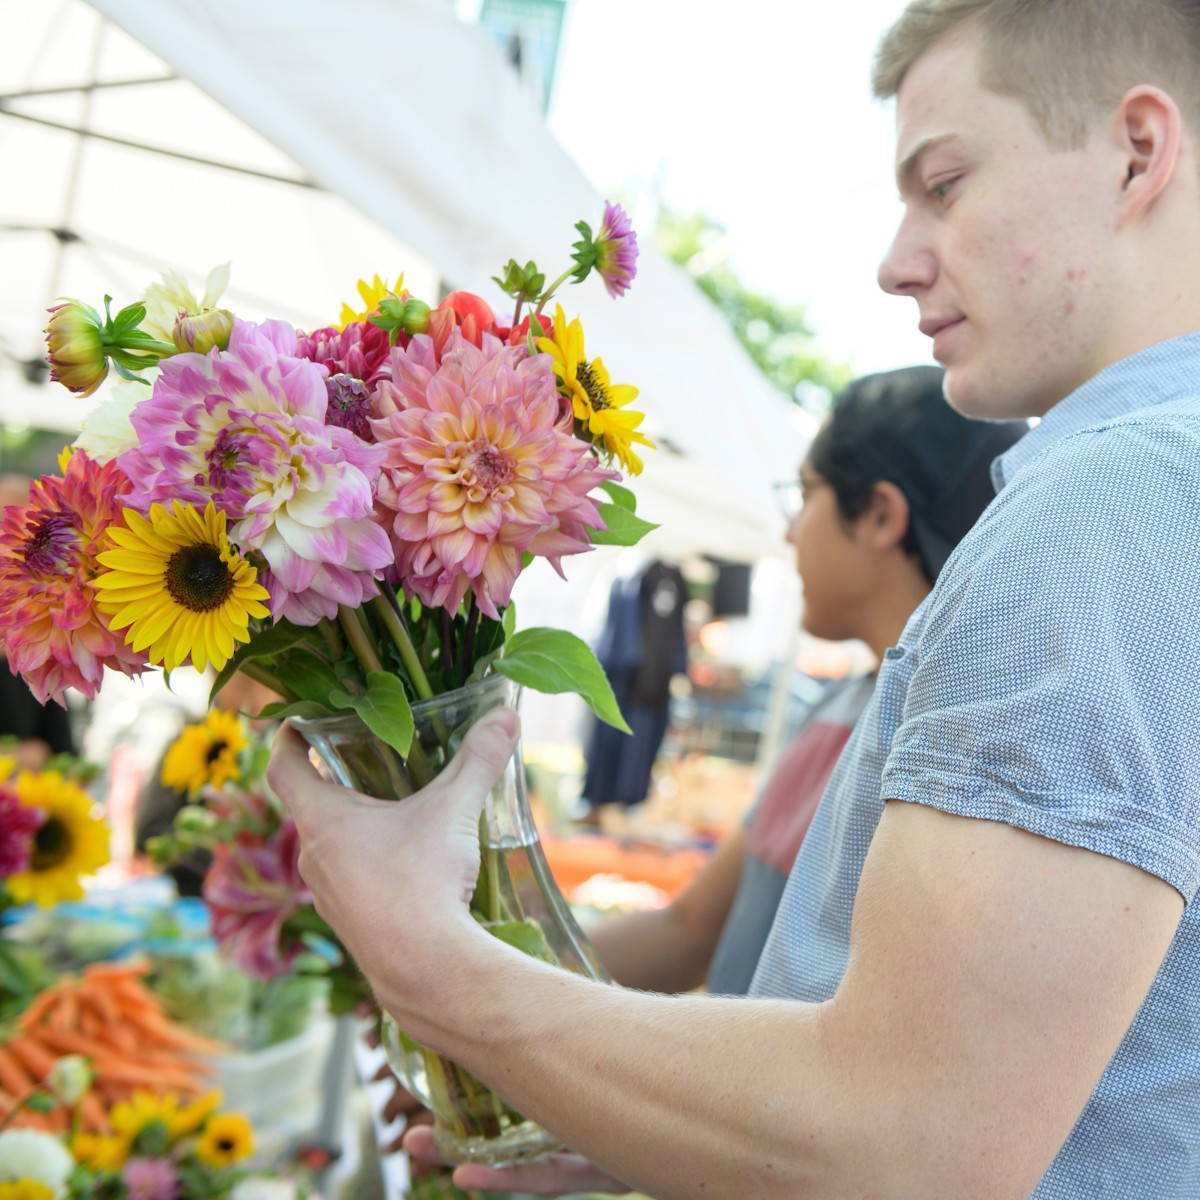 A man holds brightly colored flowers.